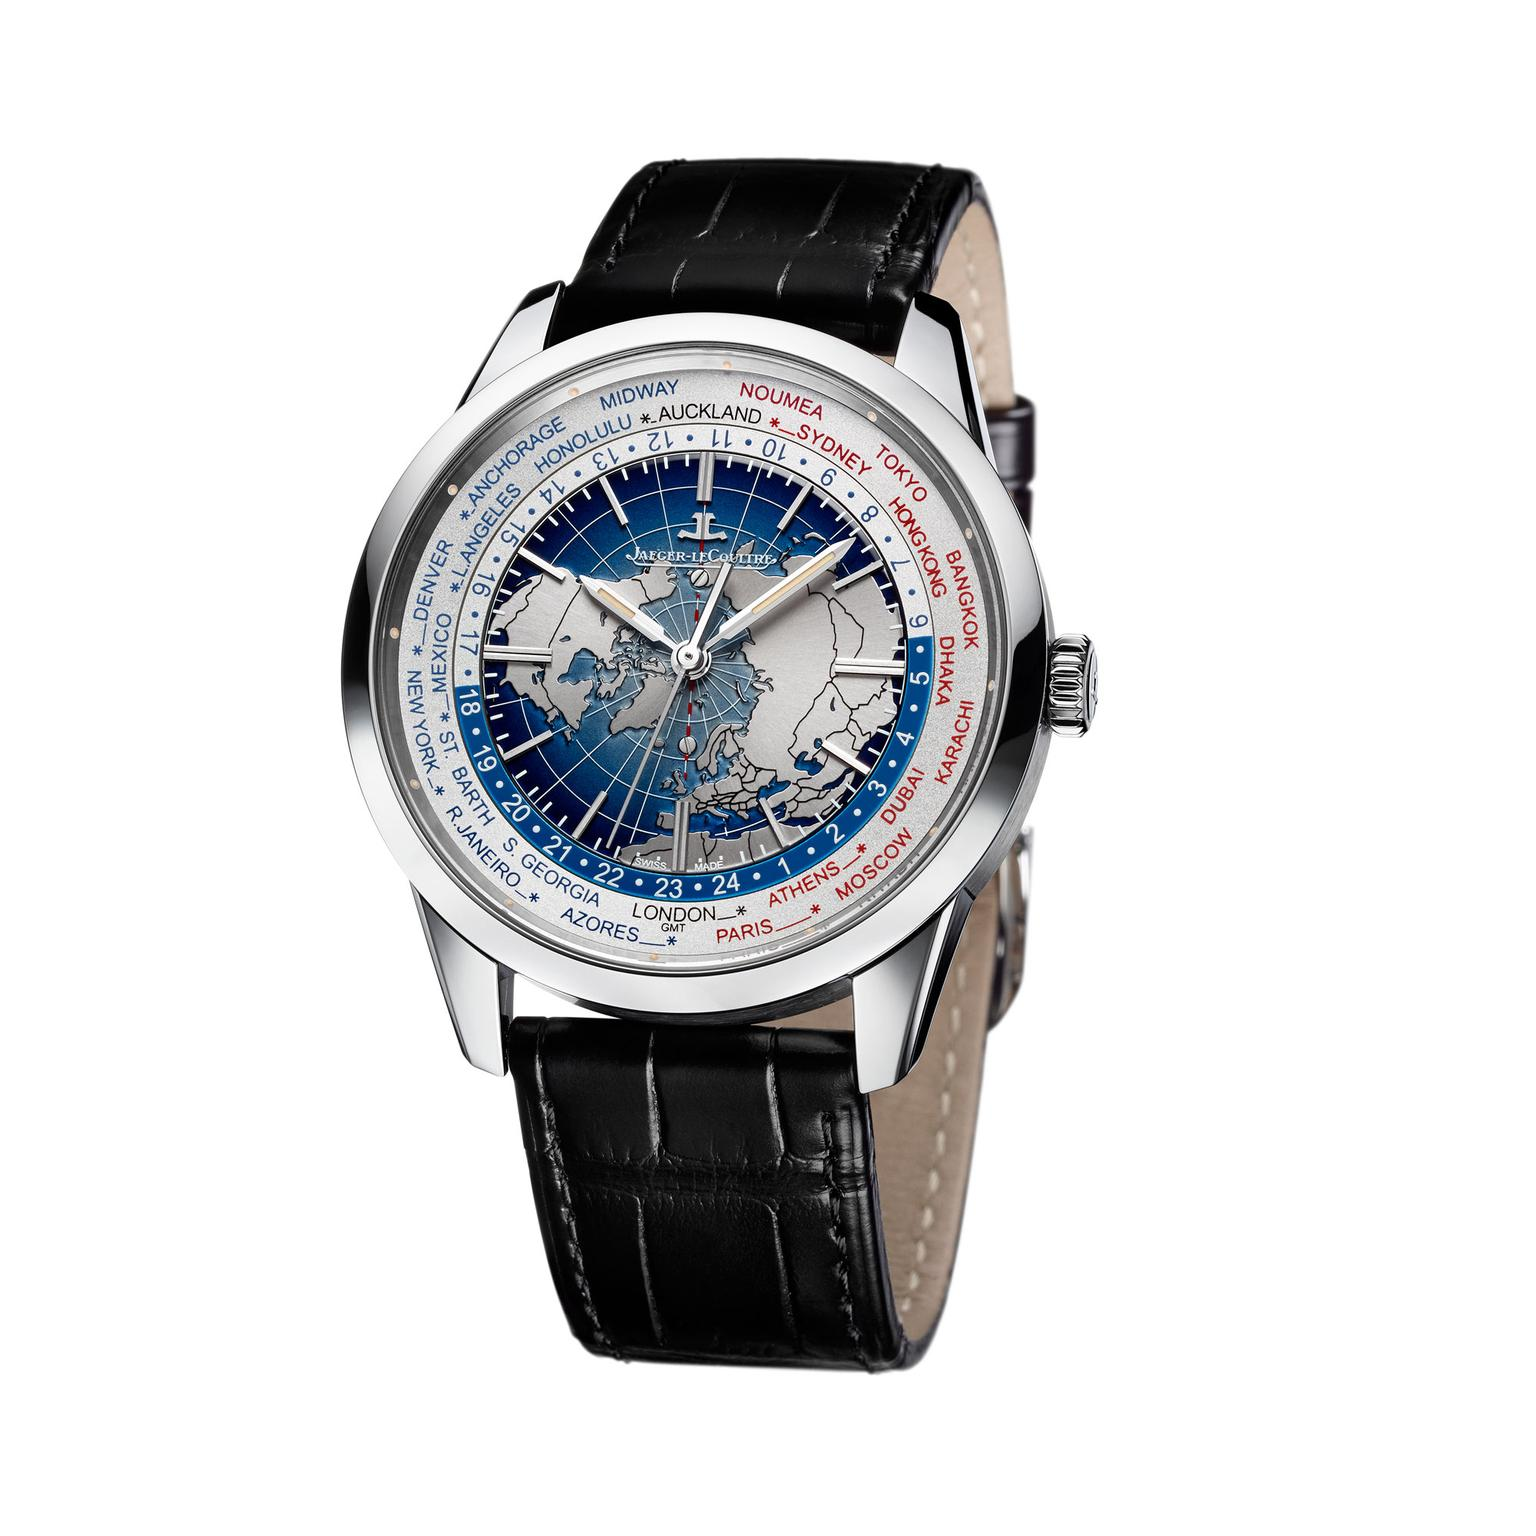 Jaeger-LeCoultre Universal Time SS watch